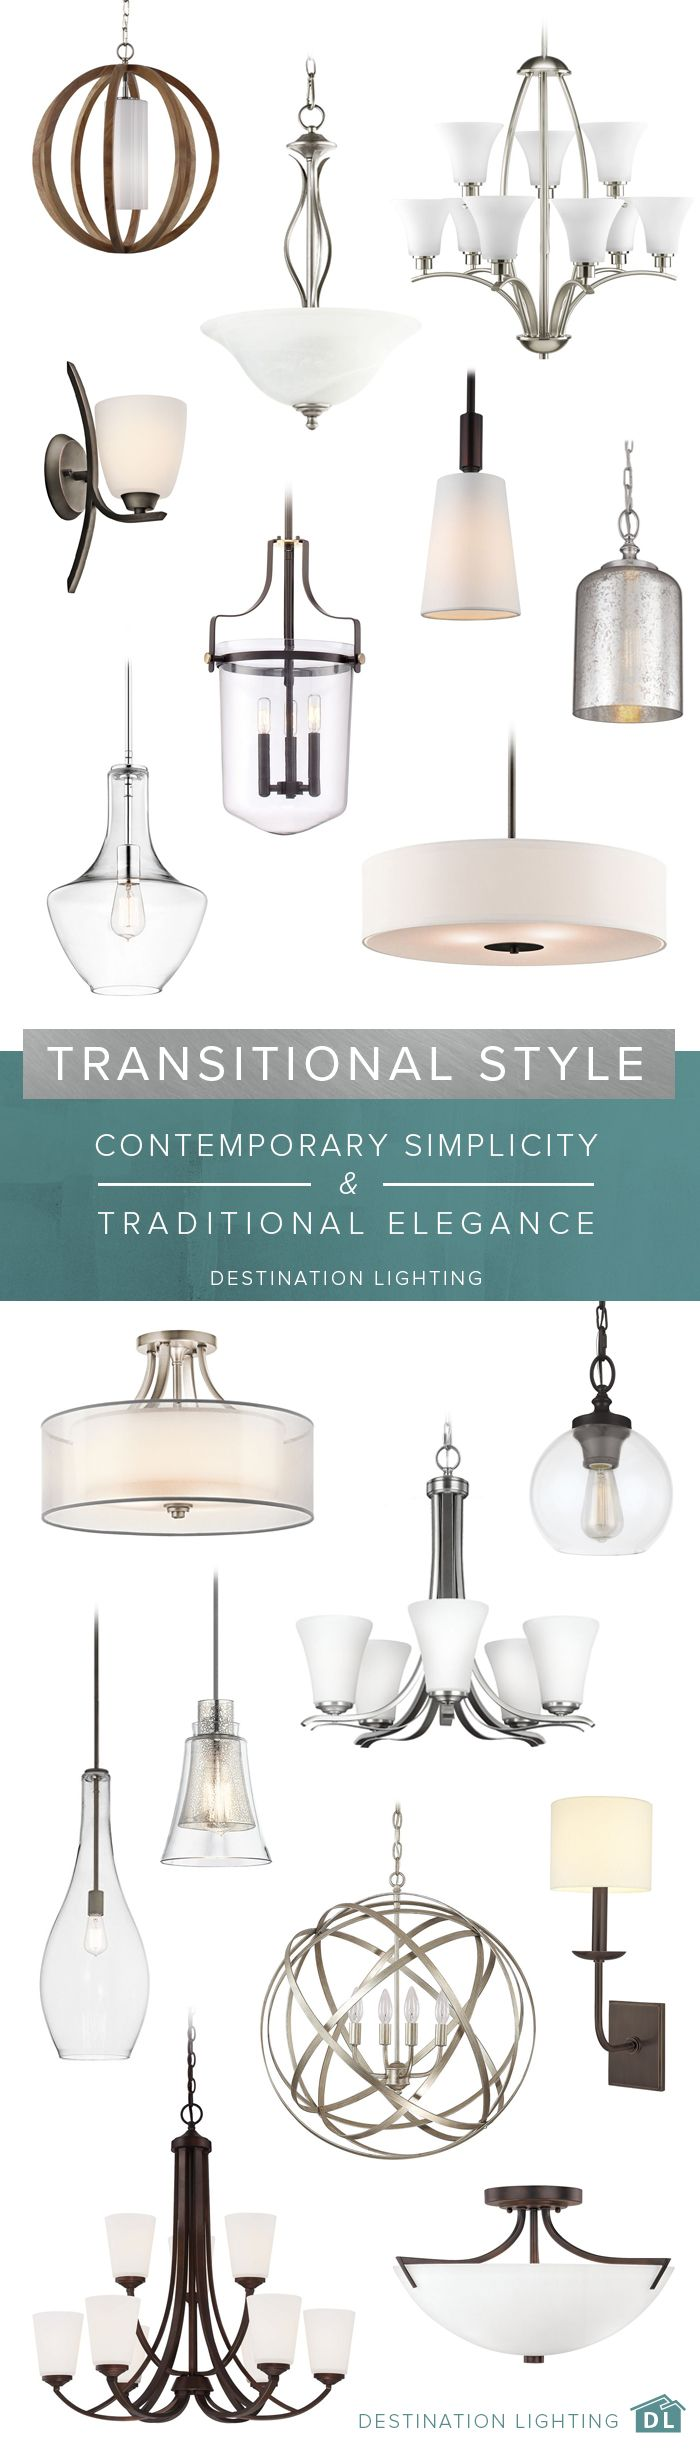 Lighting Style Guide Transitional Transitional Decor Transitional Design Transitional House